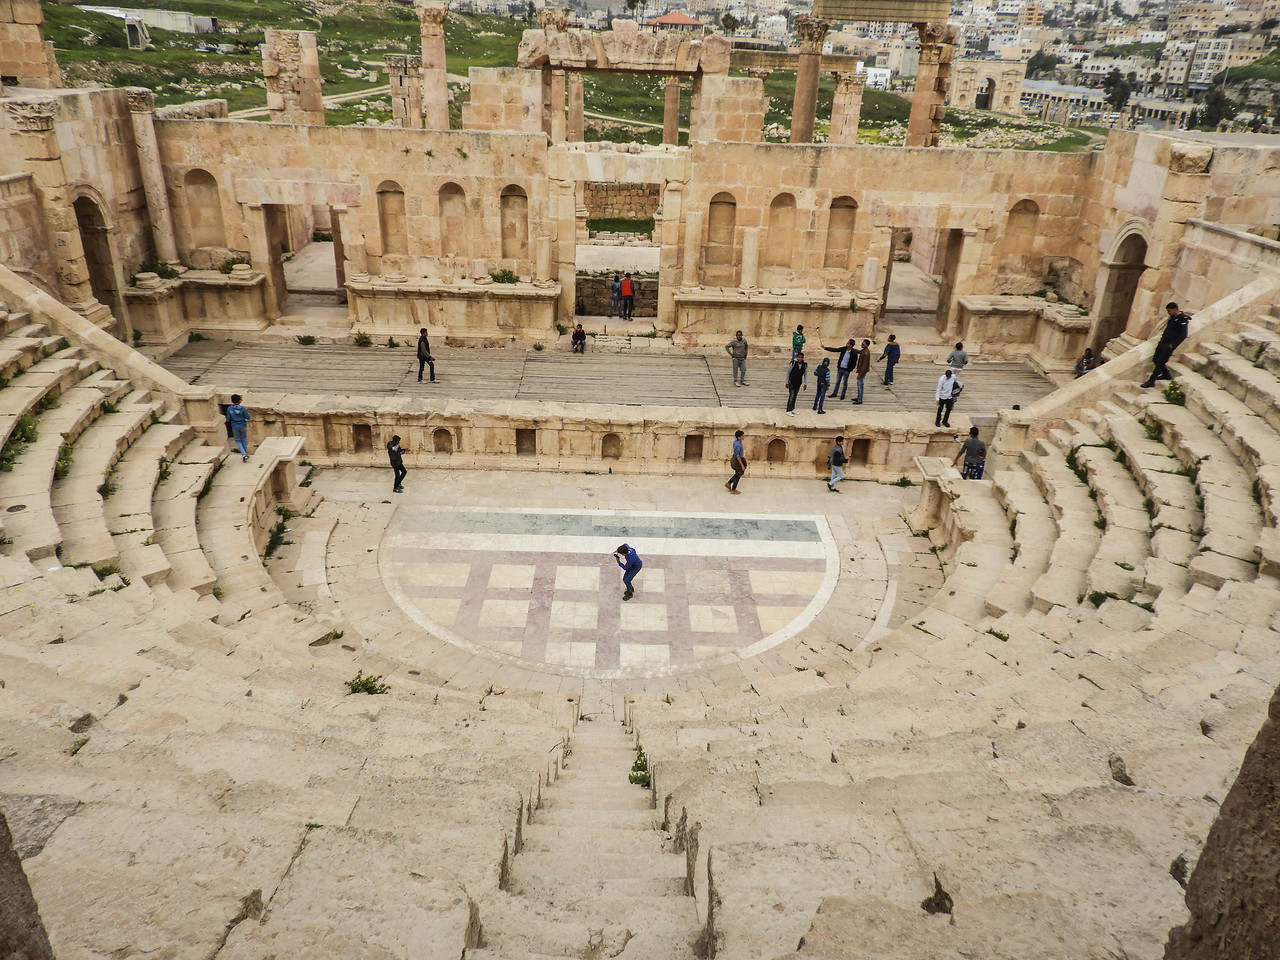 Roman amphitheater ruins at Jerash